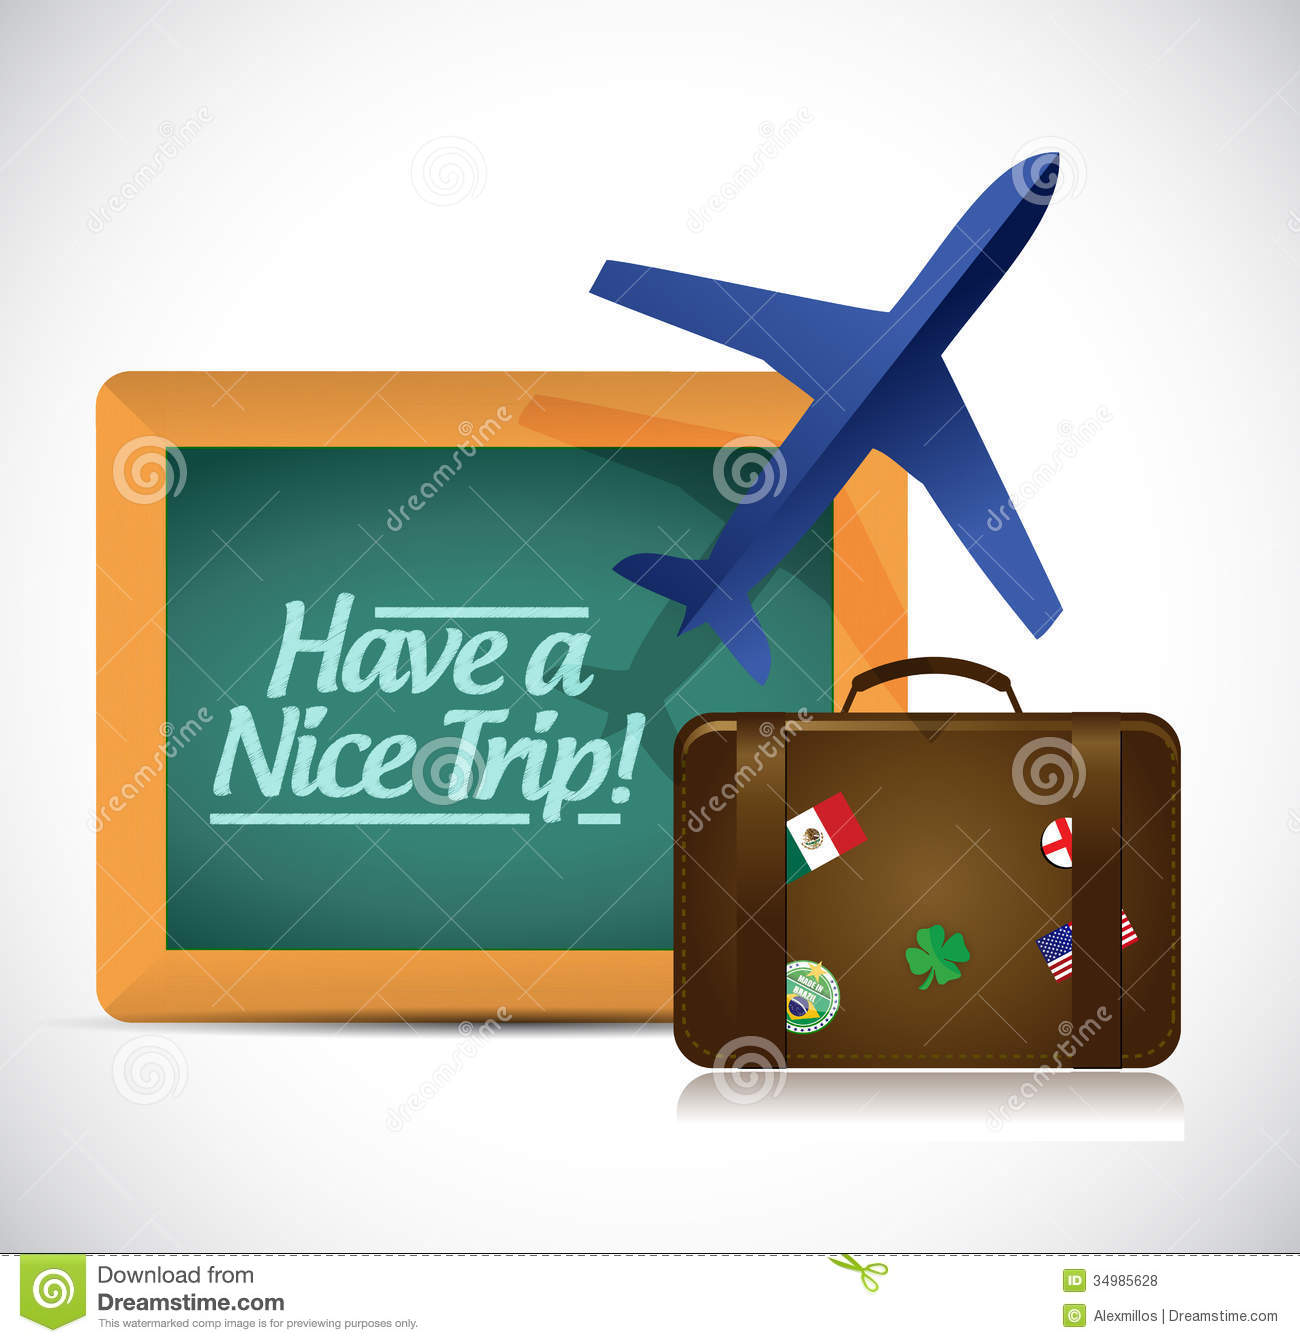 a nice trip Download 212 have nice trip stock photos for free or amazingly low rates new users enjoy 60% off 76,583,356 stock photos online.